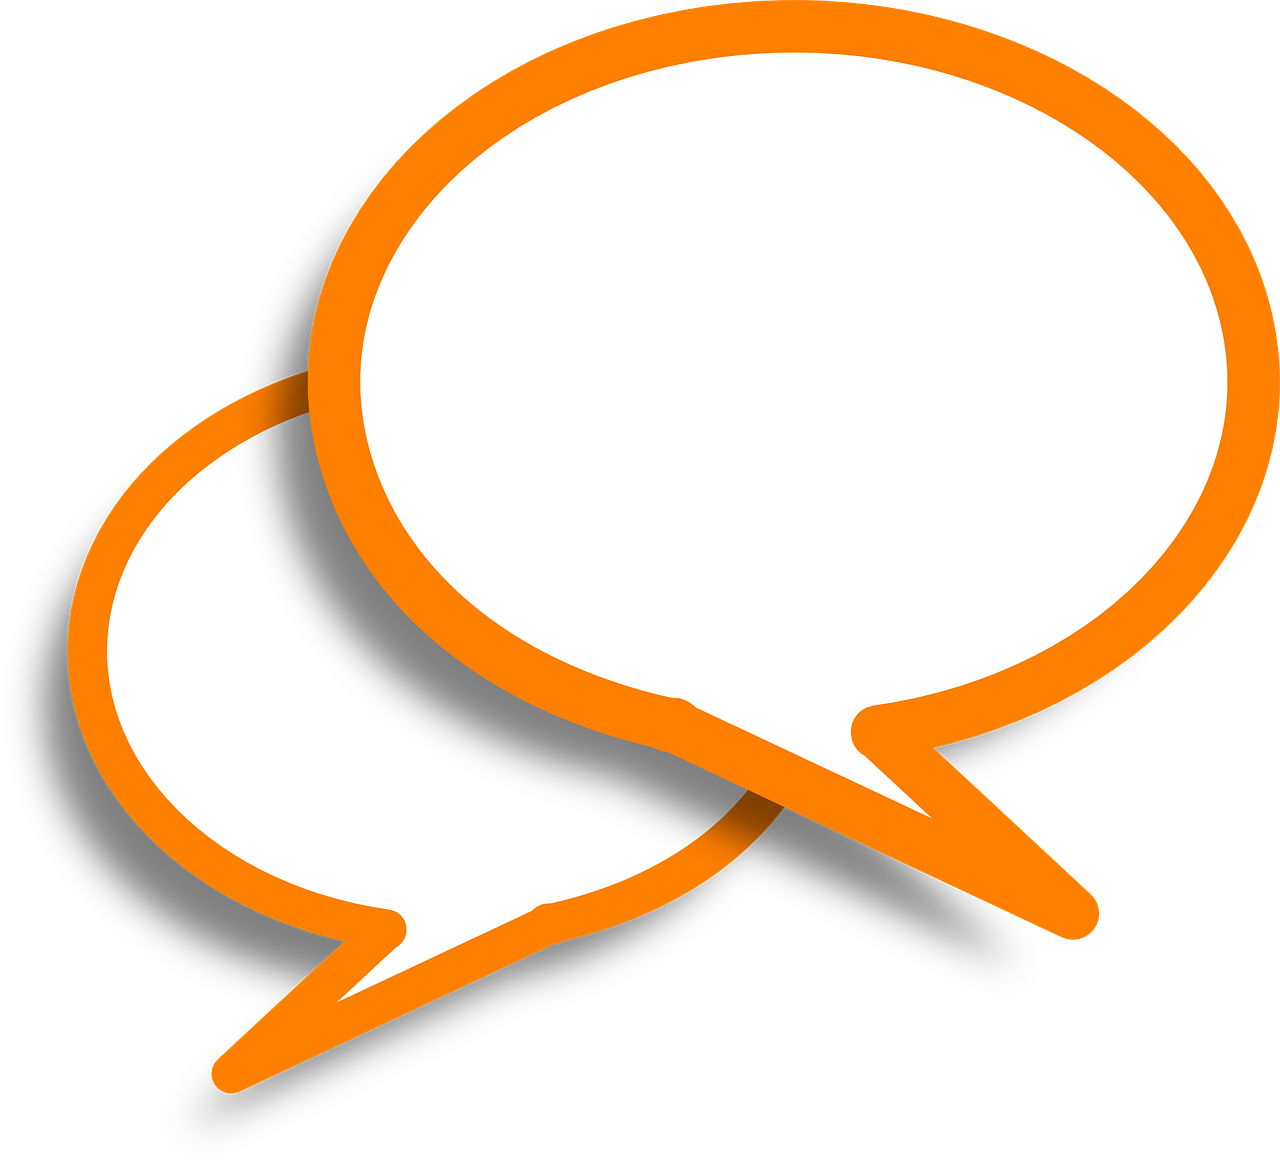 Two white speech bubbles overlapping with orange outline.